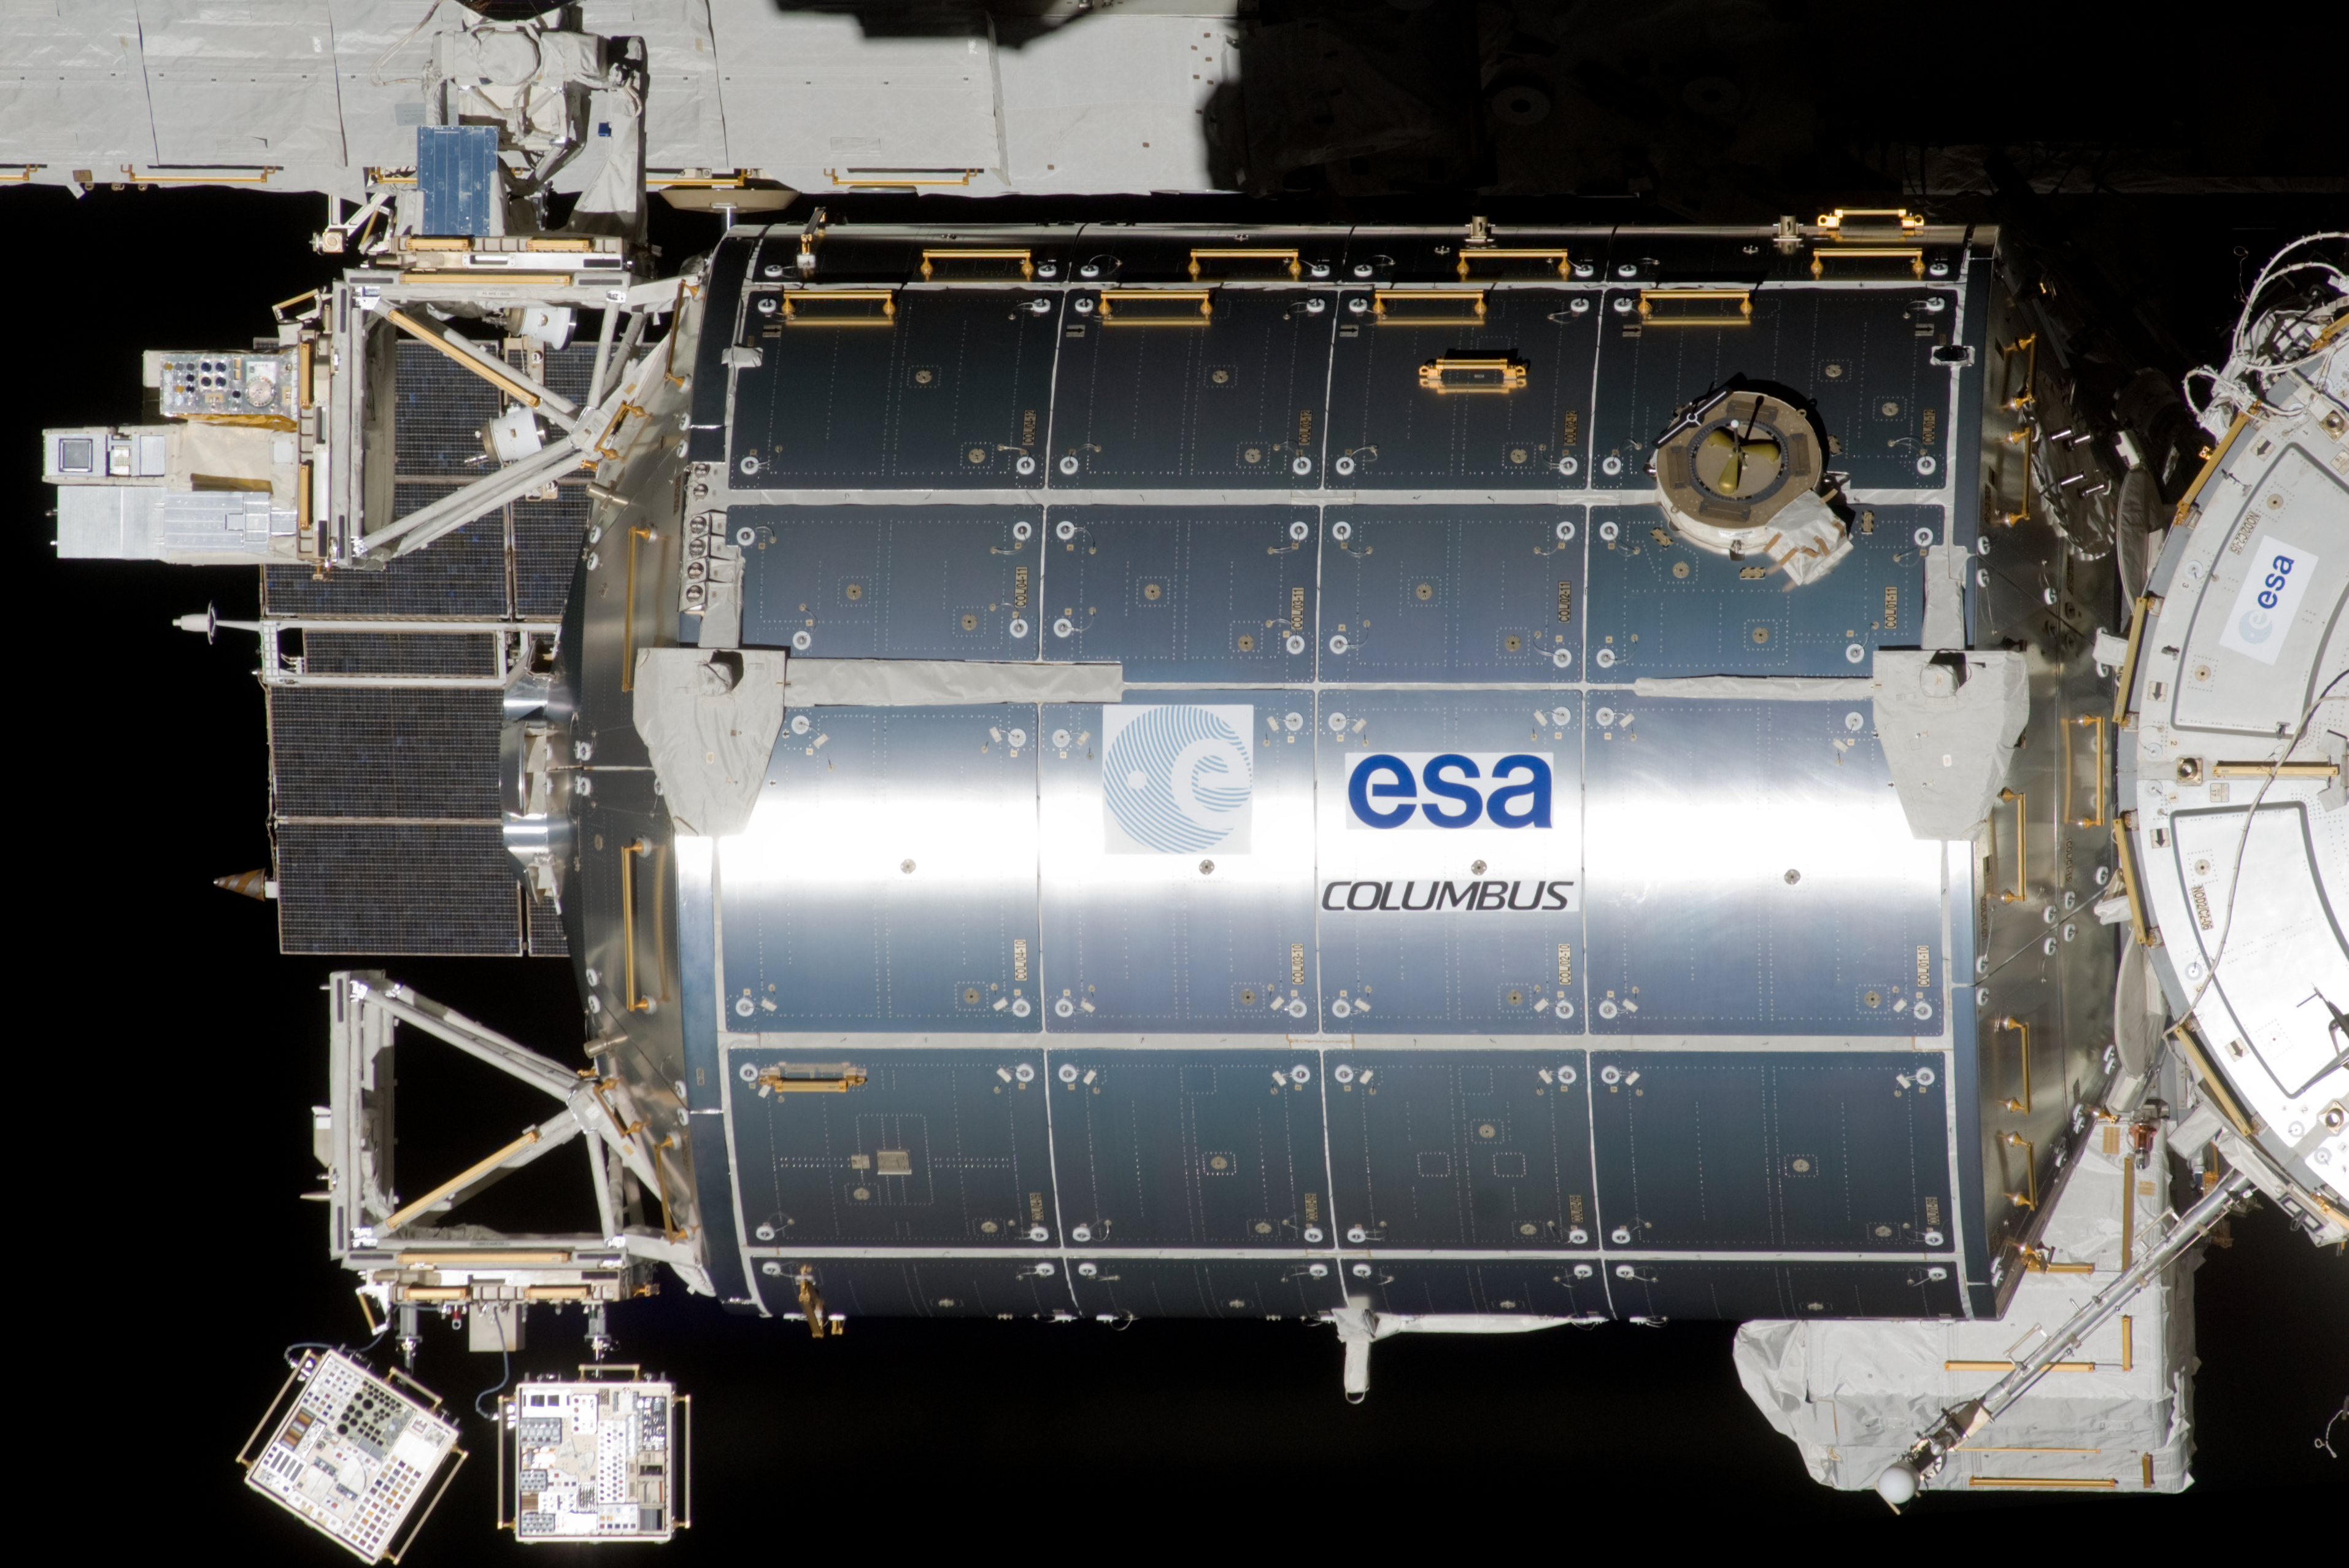 International Space Station Modules - Pics about space